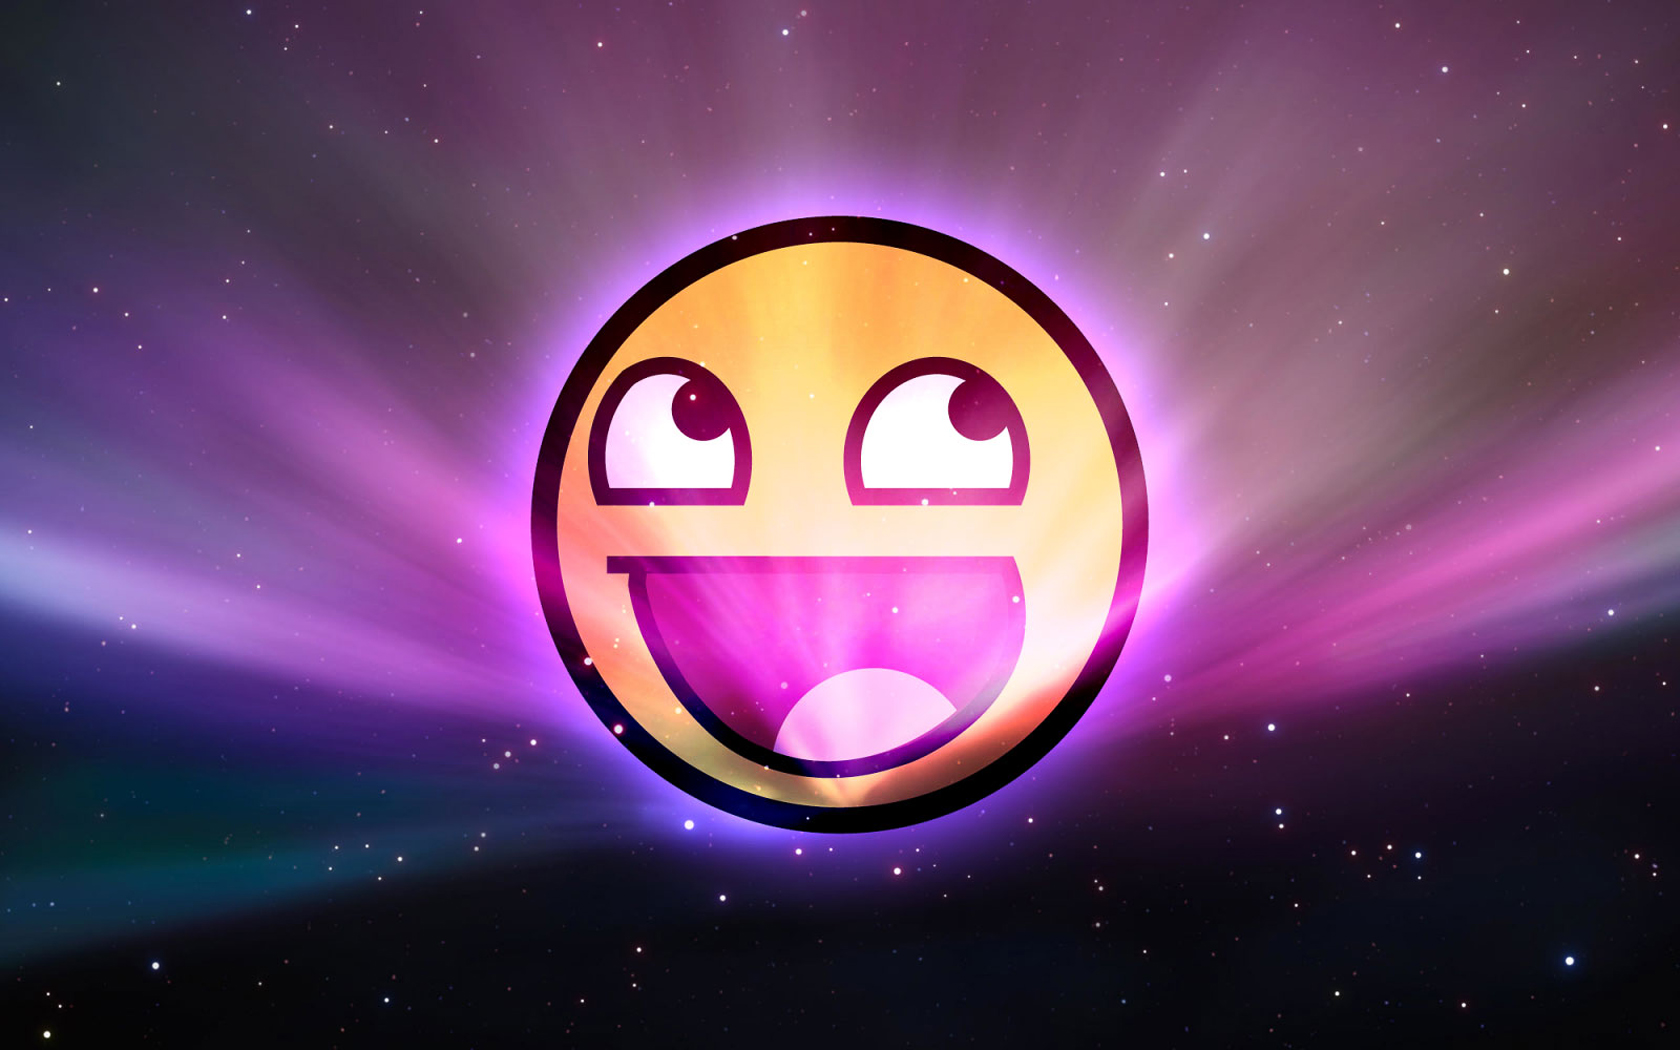 Smiley Wallpapers, Pictures, Images